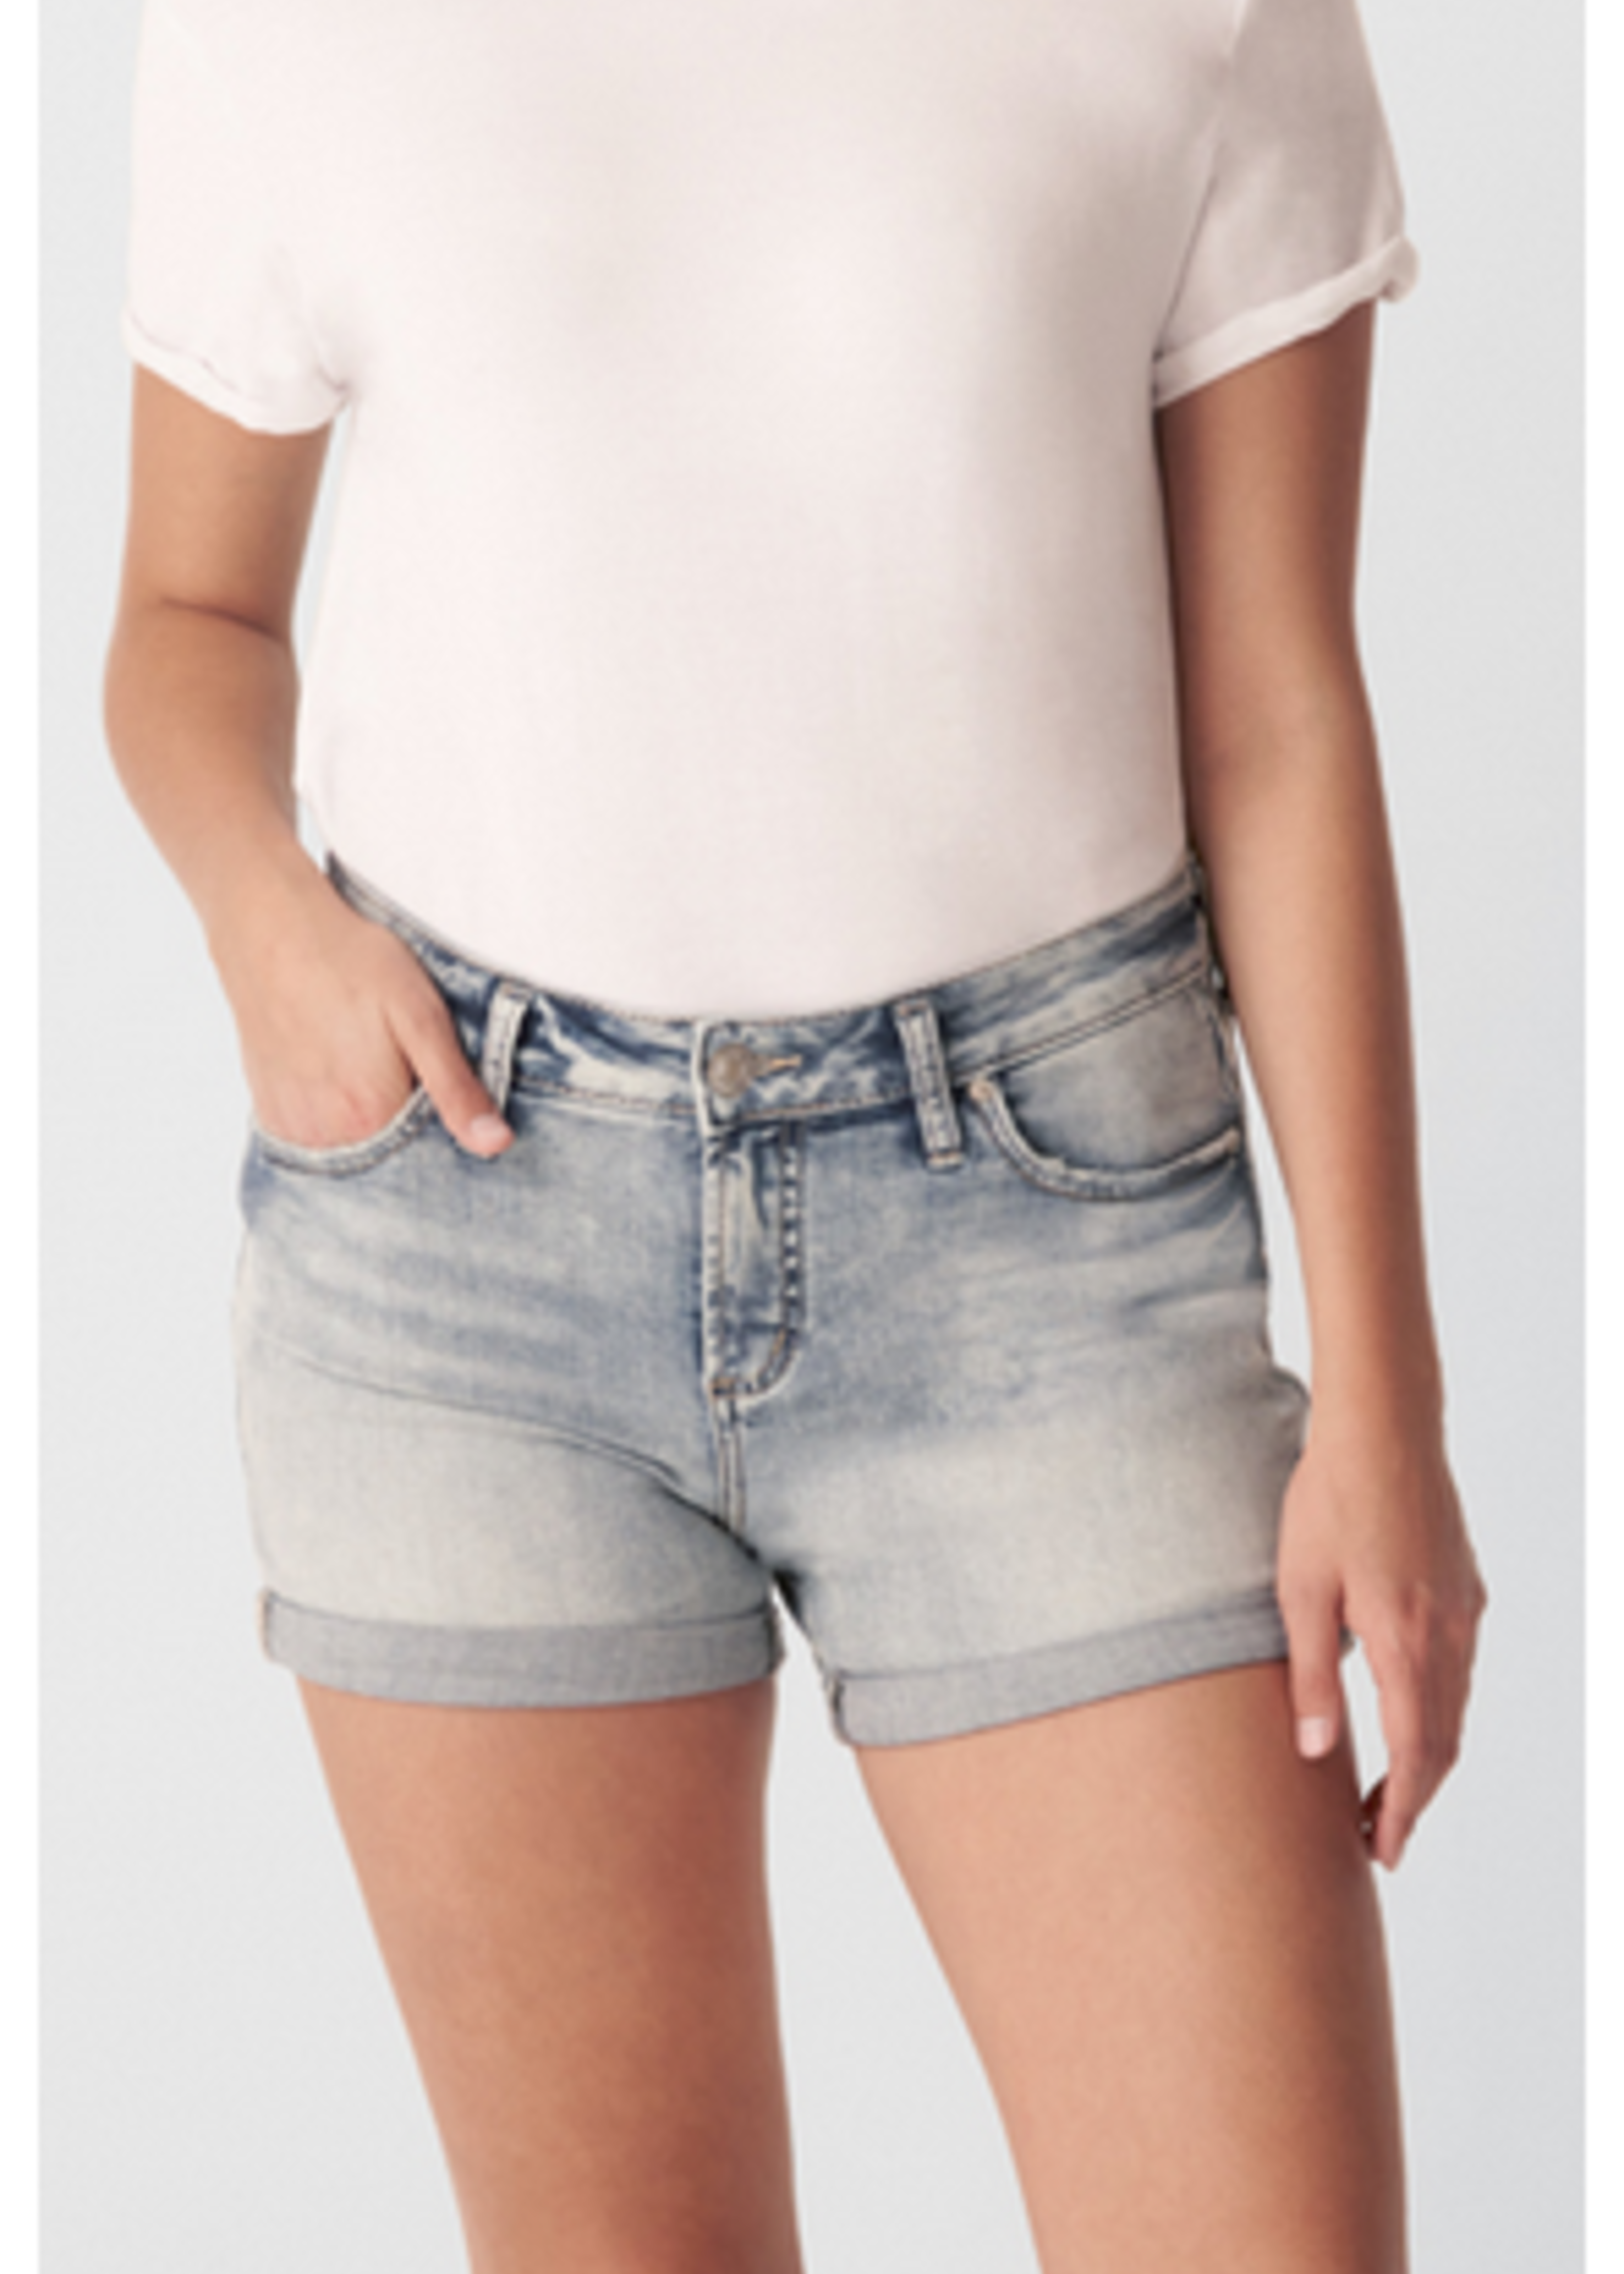 Silver Elyse curvy fit mid rise shorts